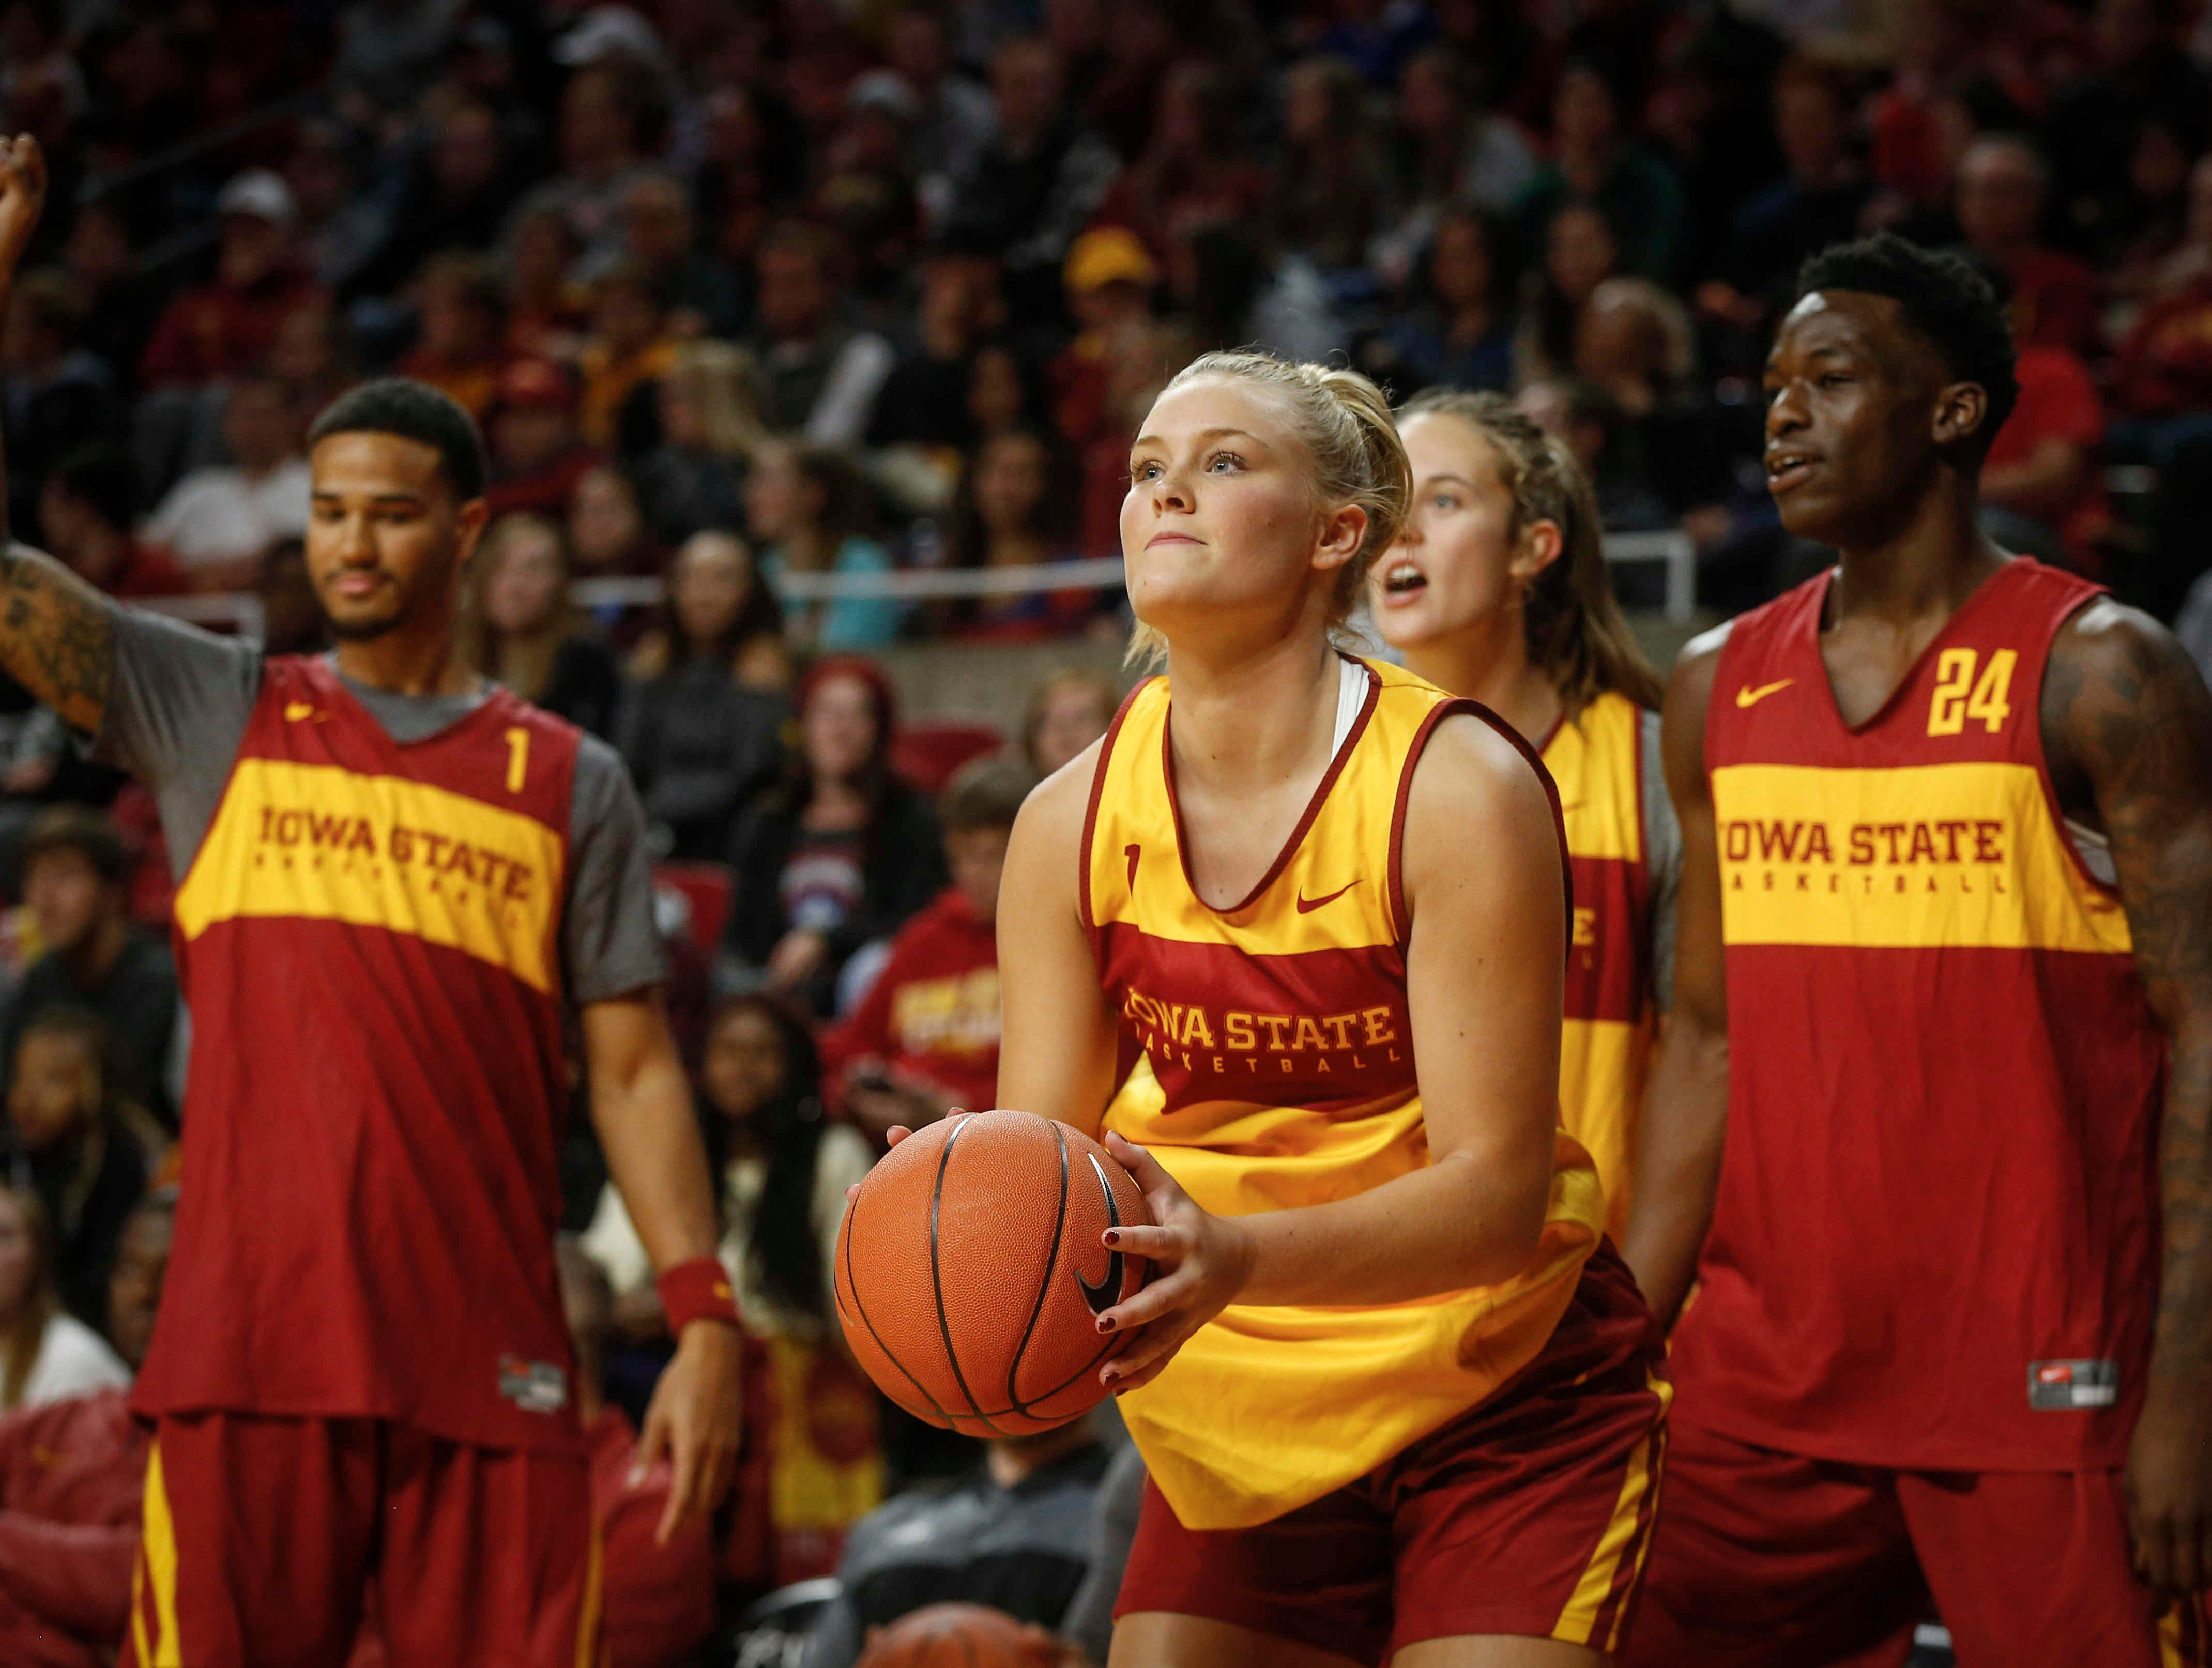 Iowa State's Madison Wise lines up a shot behind the three point line during Hilton Madness at Hilton Coliseum in Ames on Friday, Oct. 12, 2018.